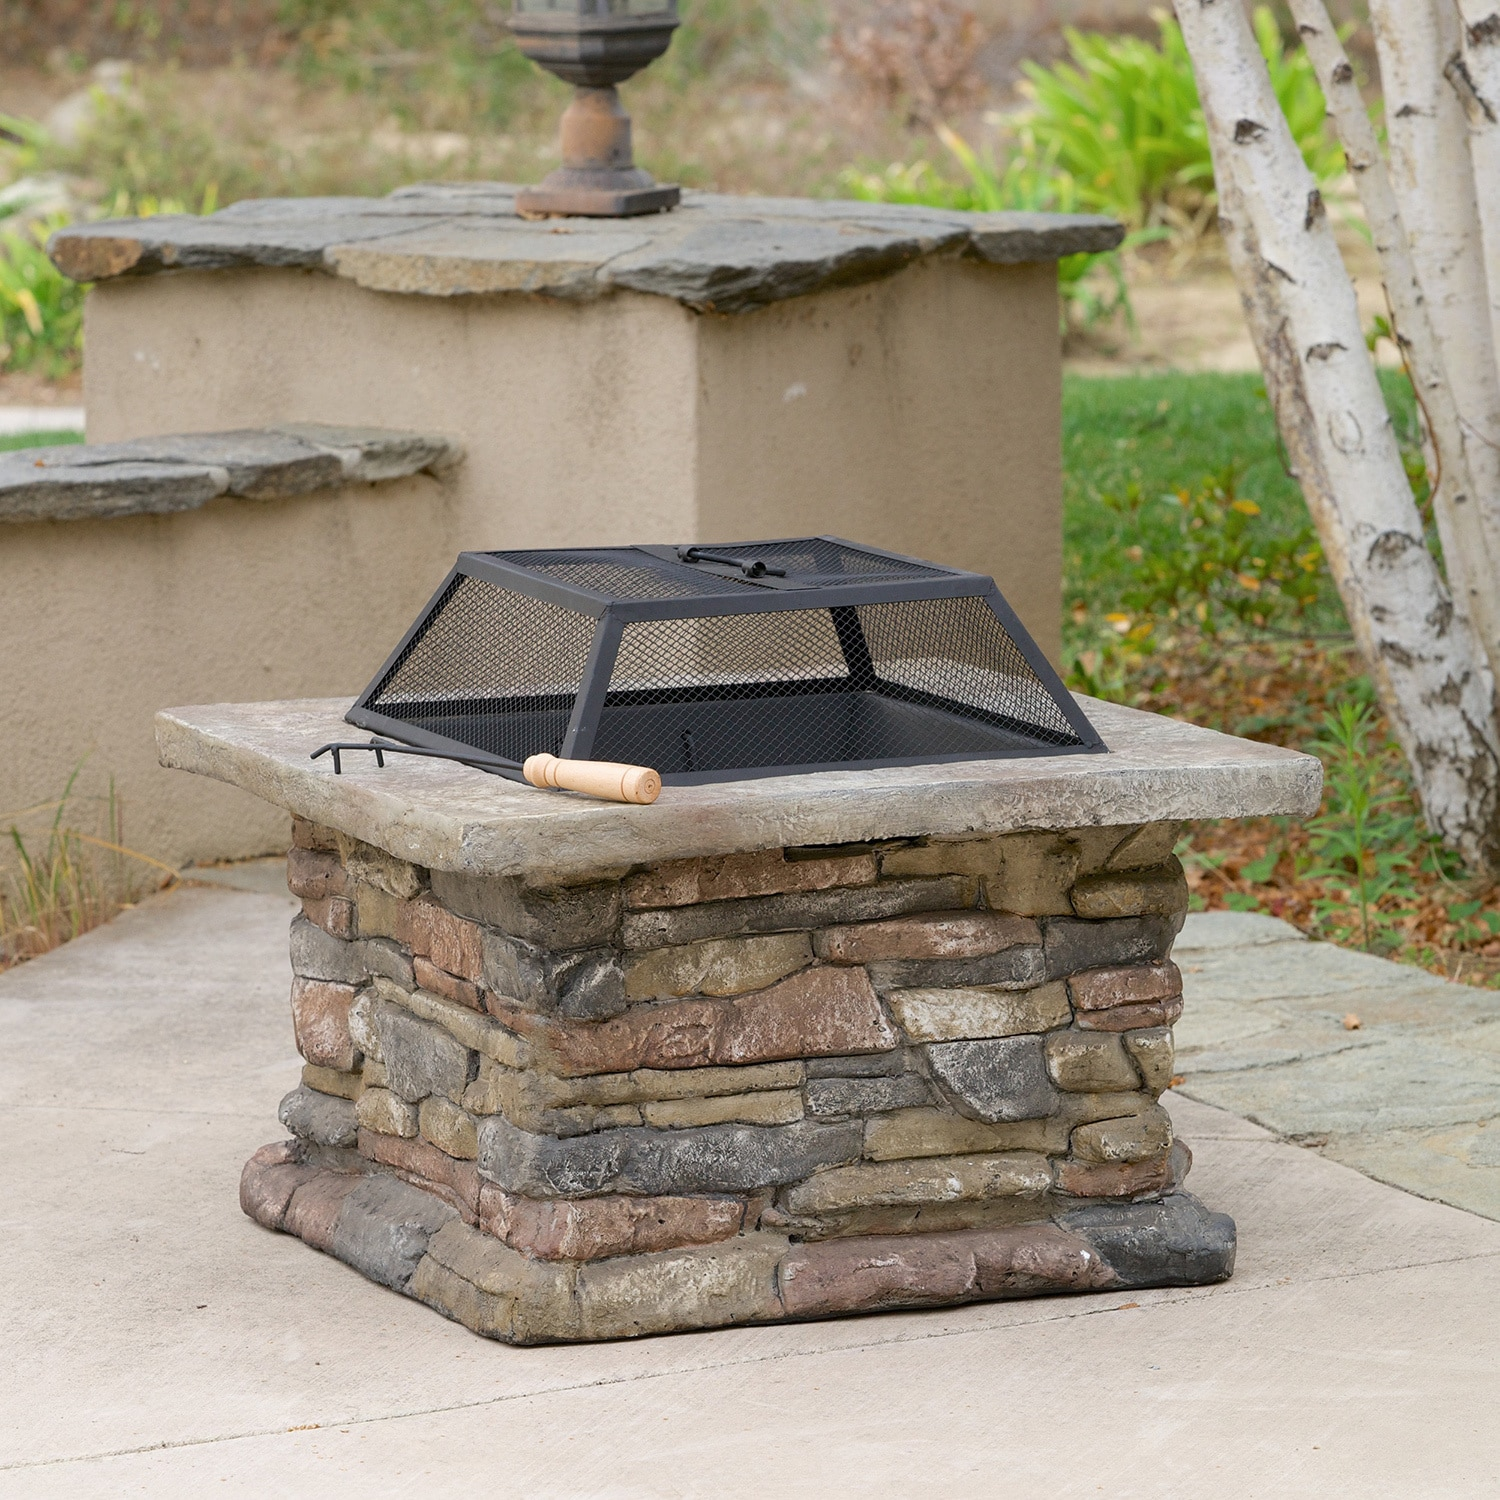 Corporal Natural Stone Square Fire Pit by Christopher Kni...